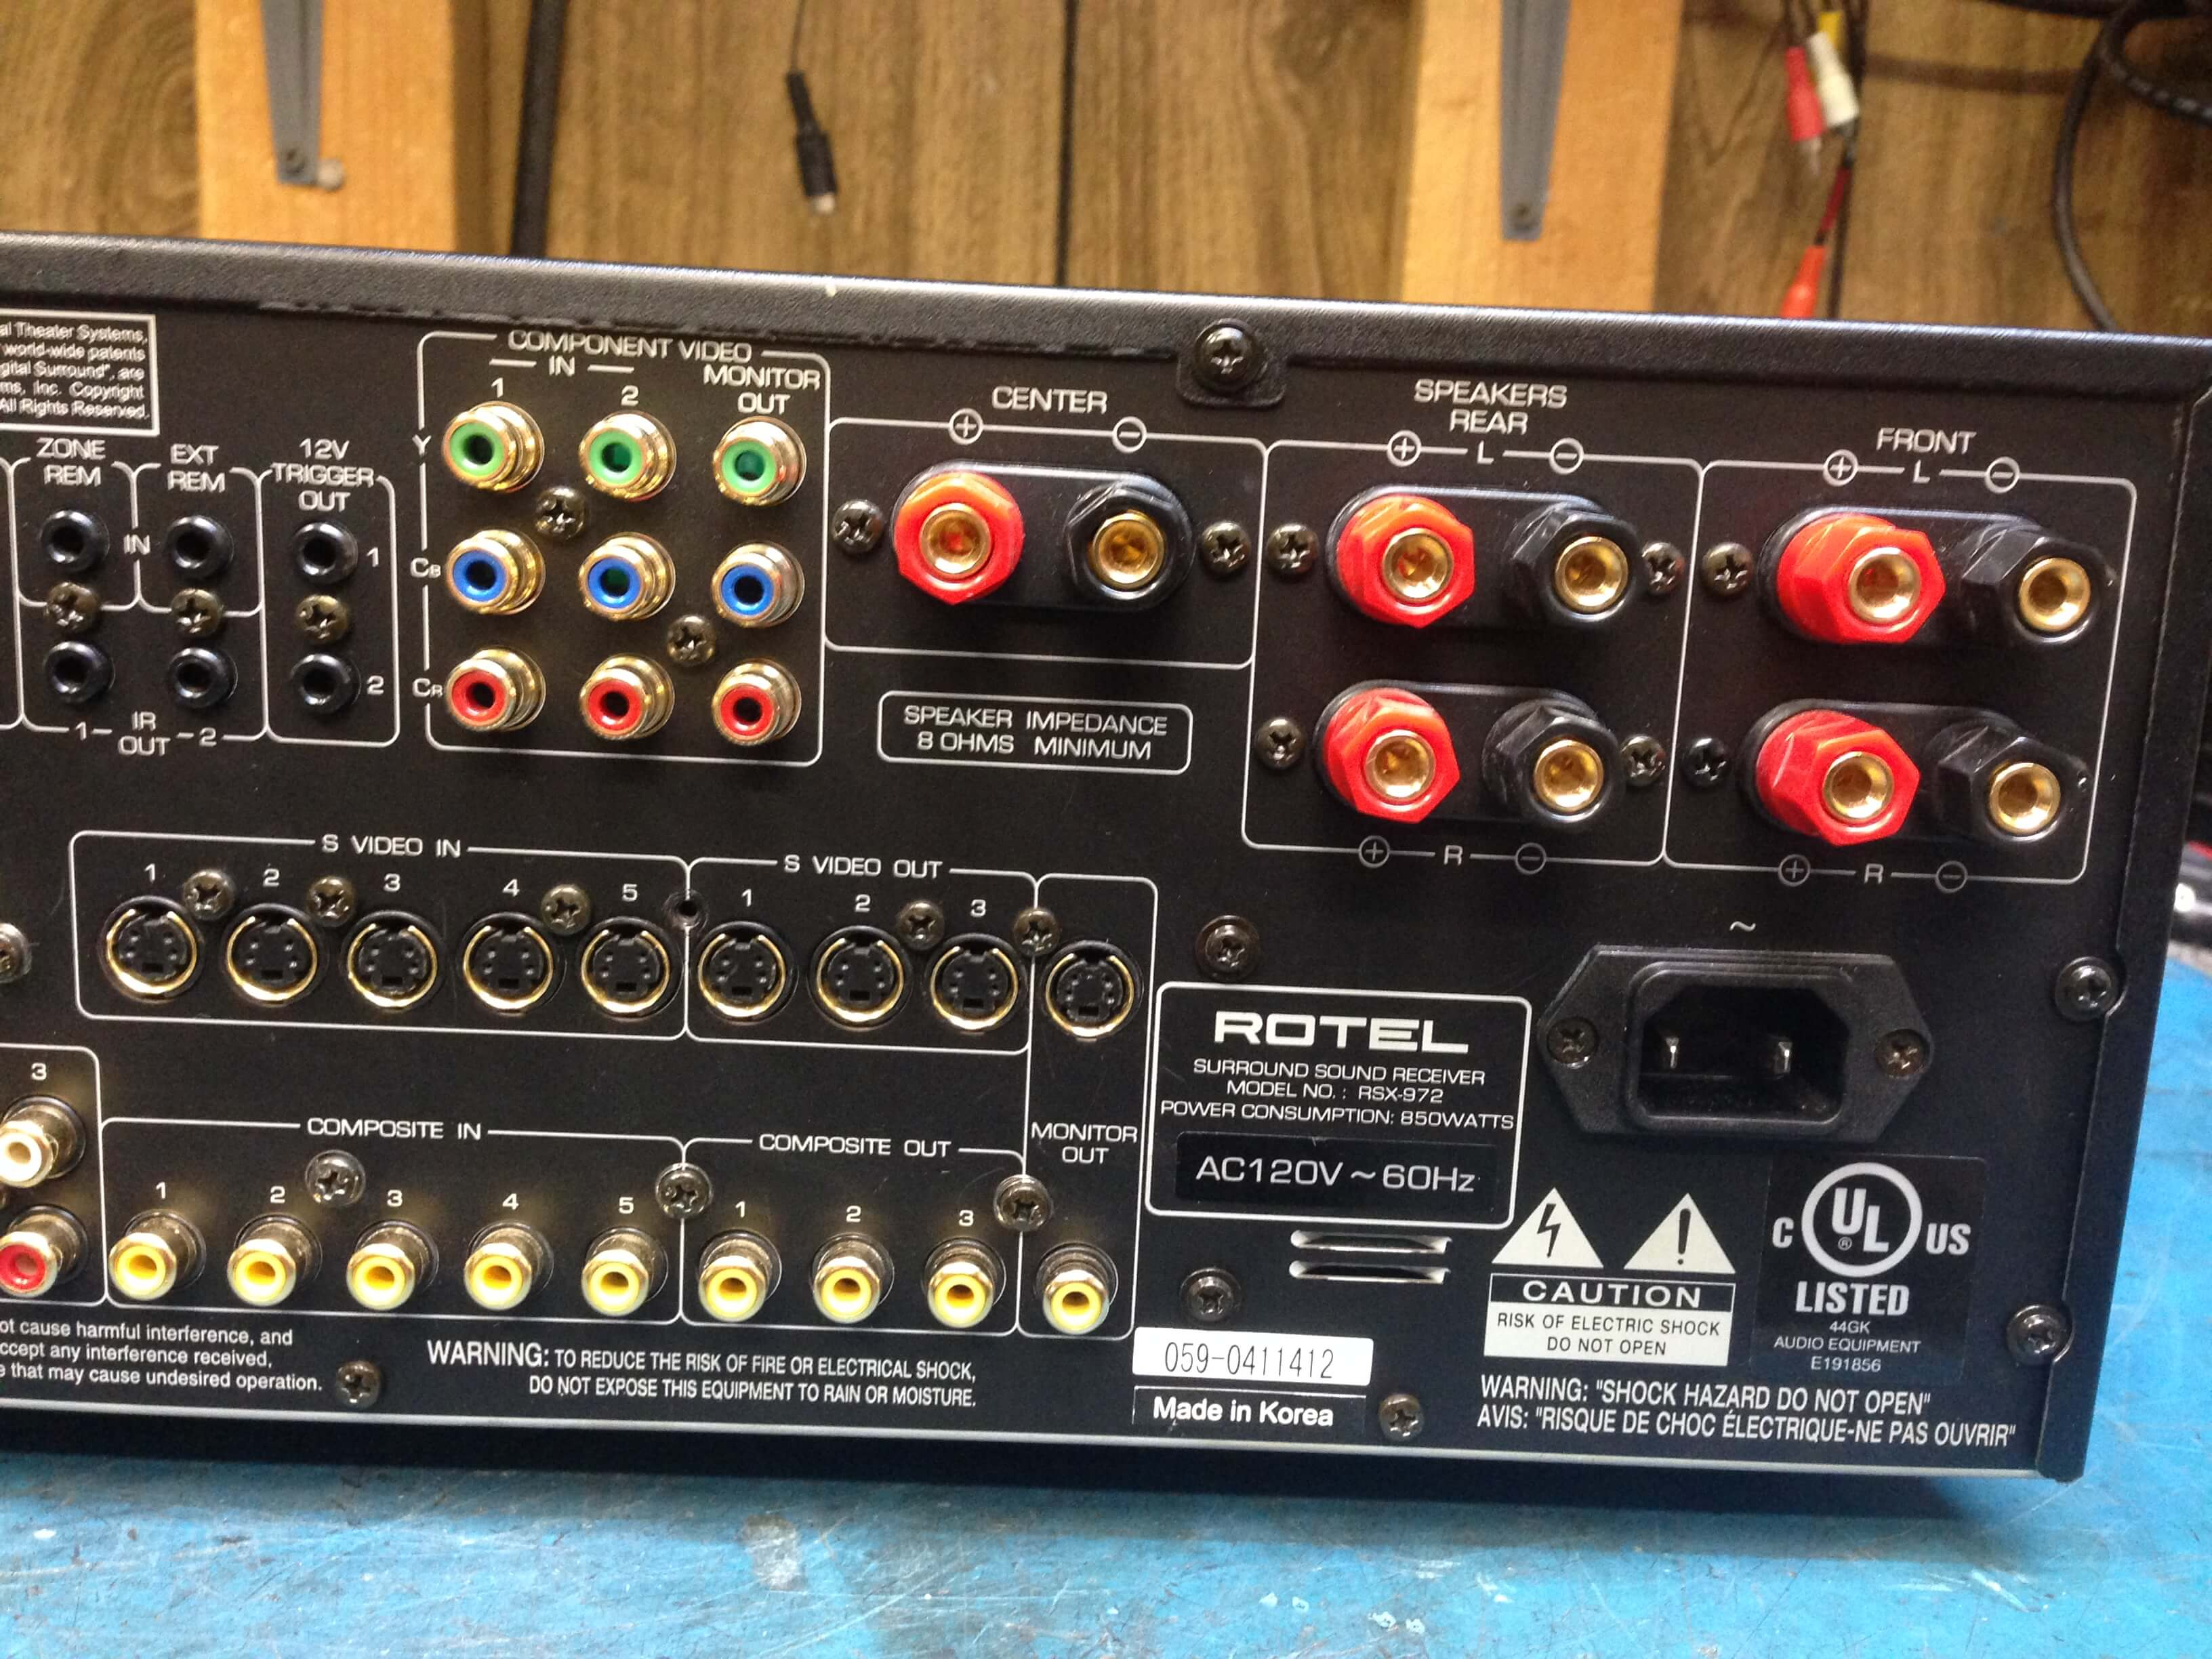 Rotel RSX-972 surround sound receiver